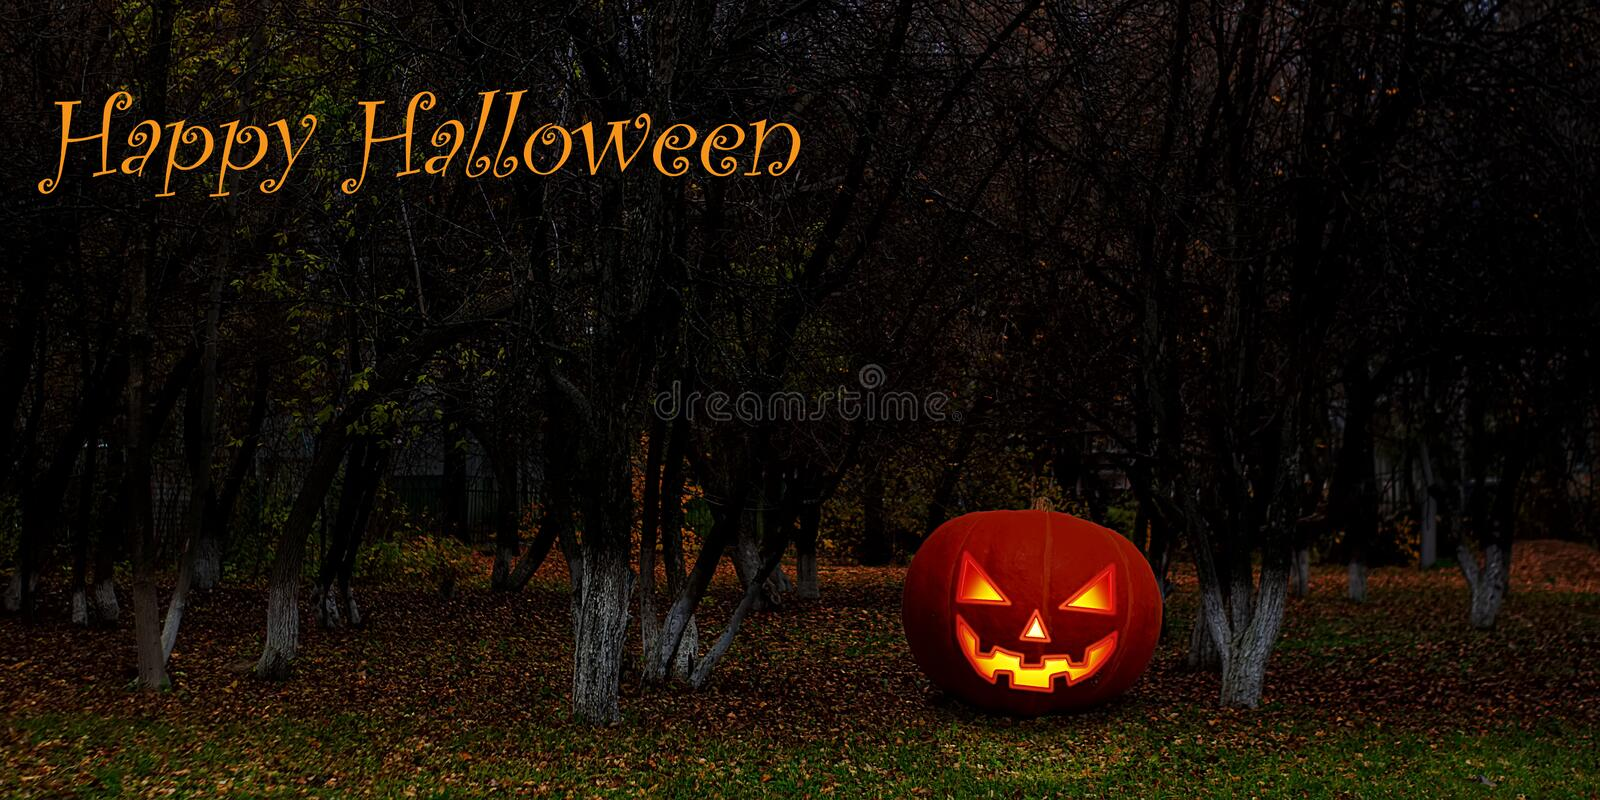 Halloween background wallpaper with pumpkin jack lantern. The sinister eyes of a pumpkin. Halloween Mystical Jack O. Pumpkin. Lantern in the Forest. Spooky royalty free stock images